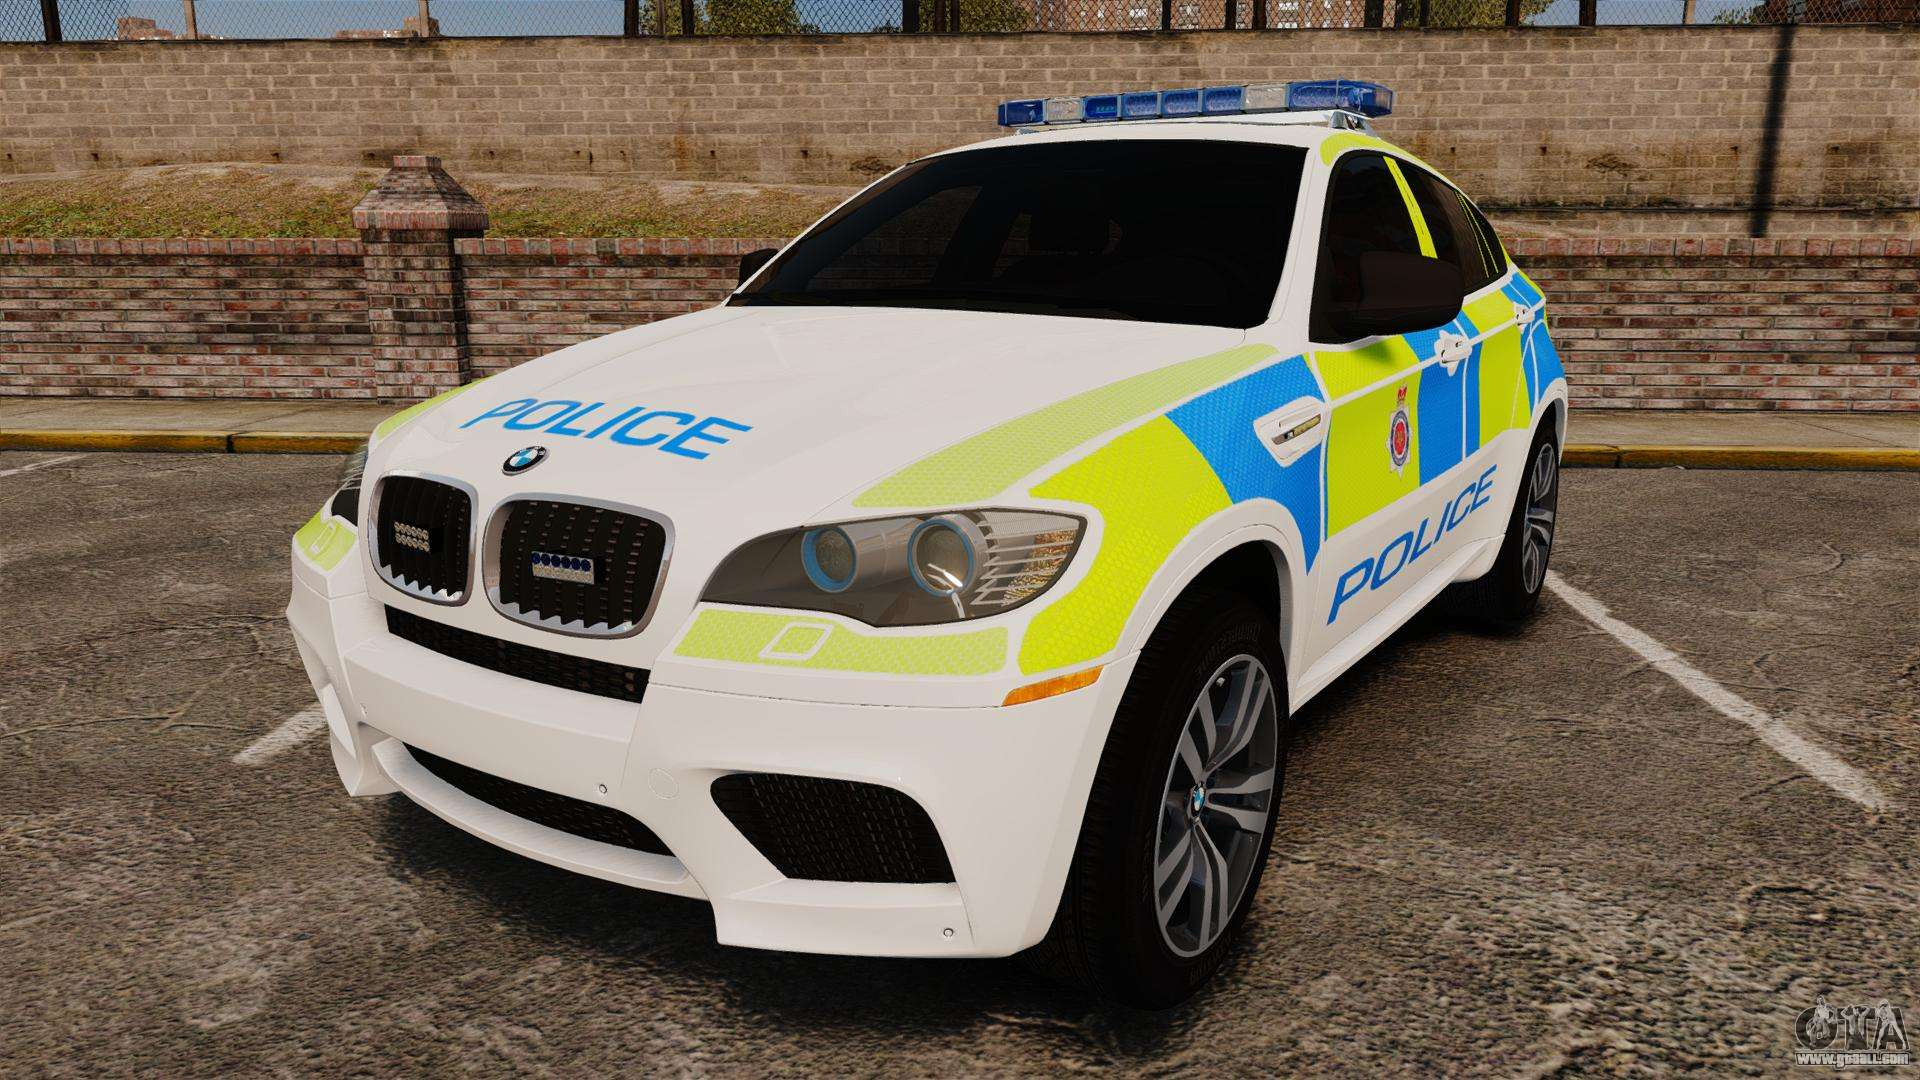 Bmw X6 Lancashire Police Els For Gta 4